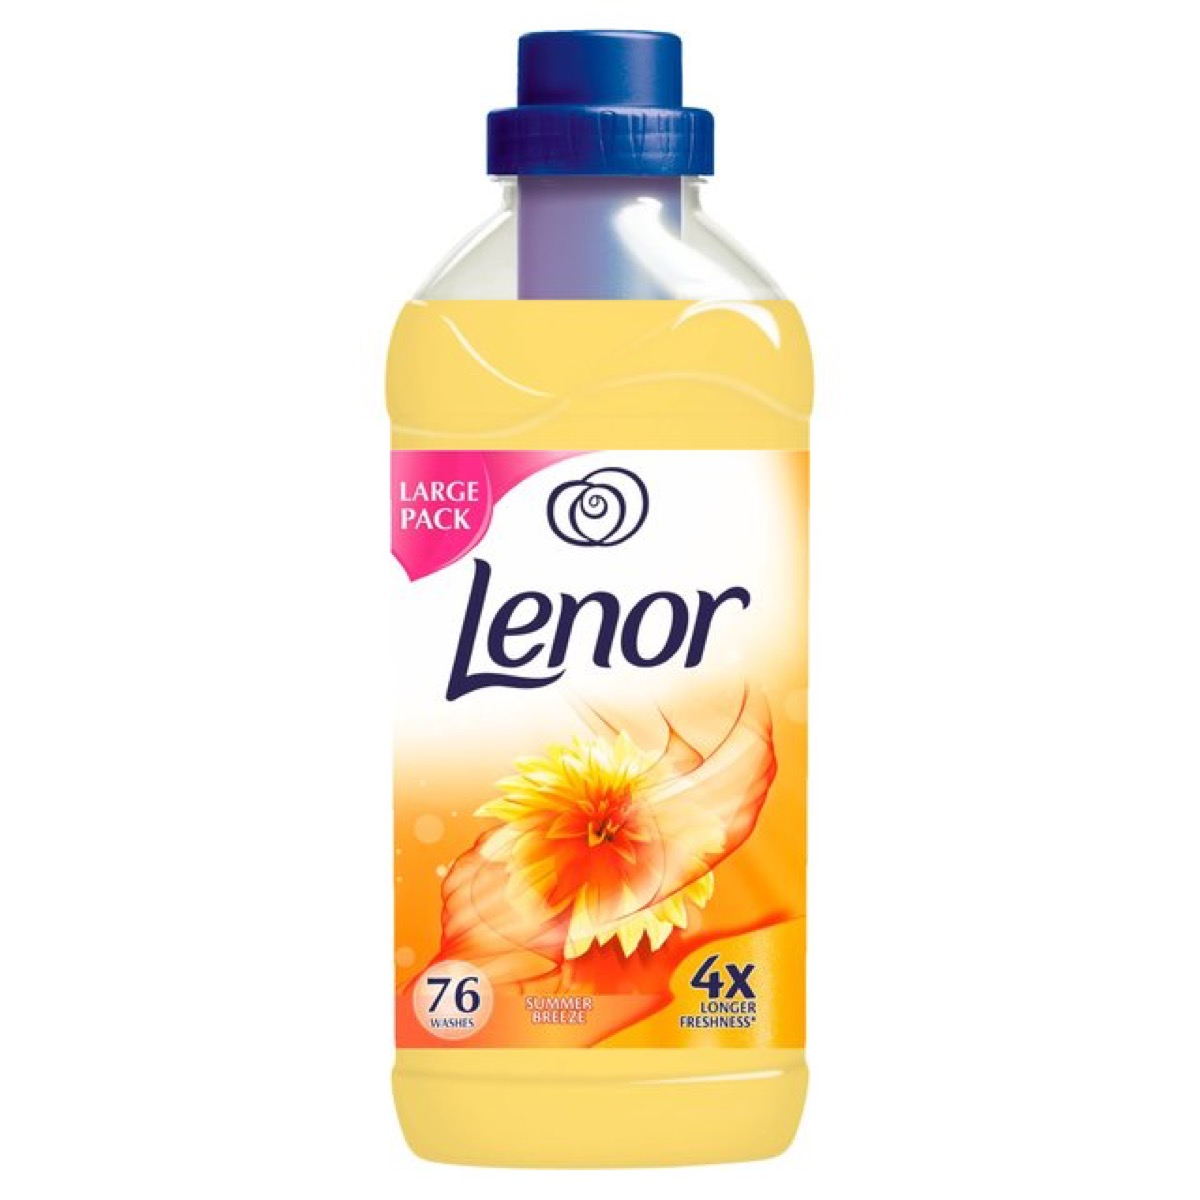 Lenor Laundry Detergent {Brands with Different Names Abroad}